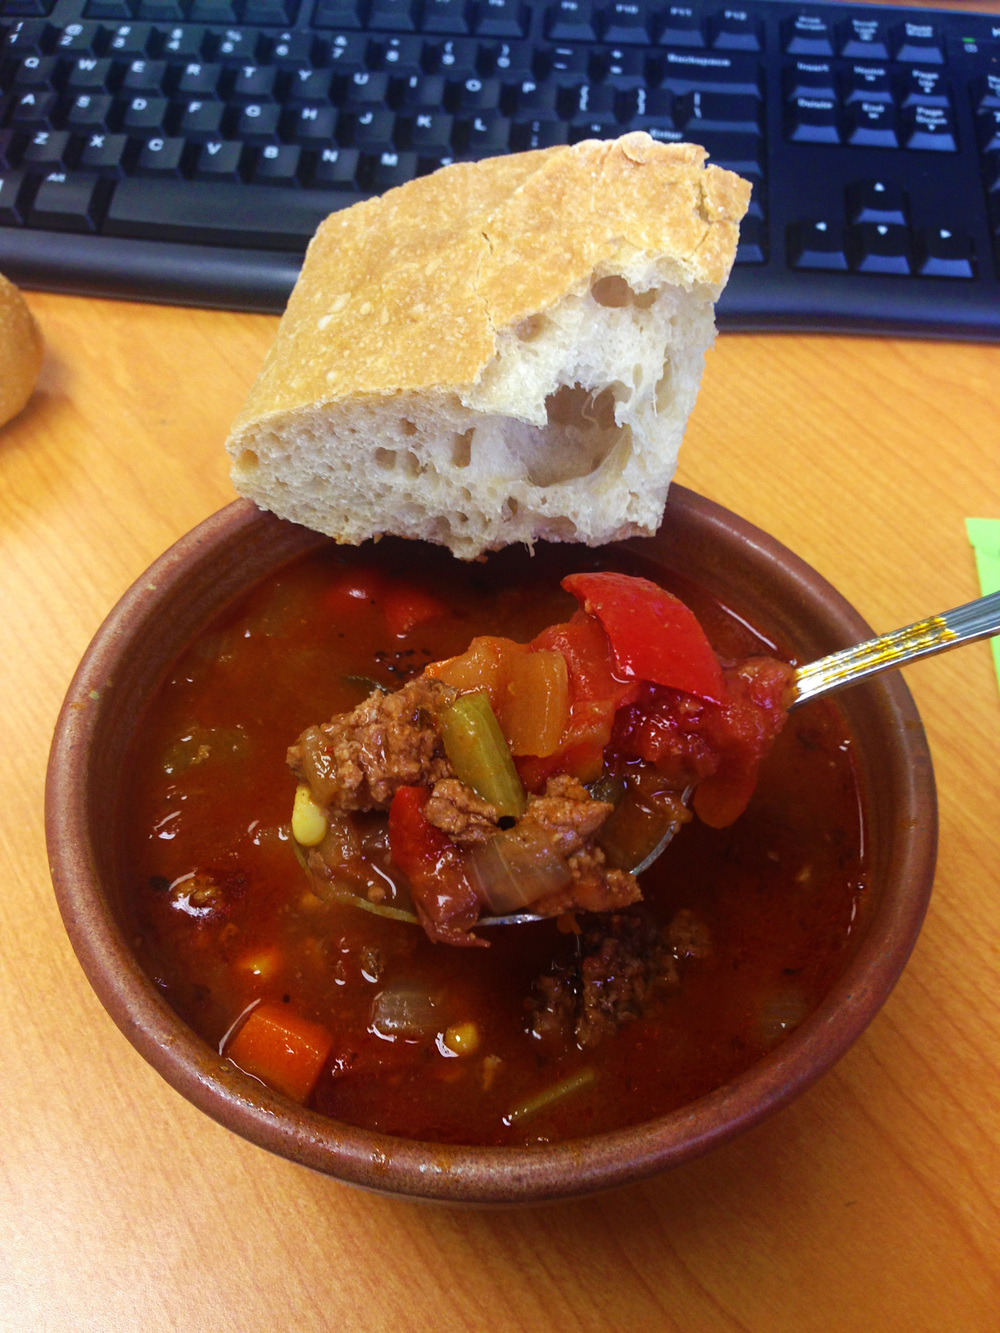 chili with bread at desk.jpg